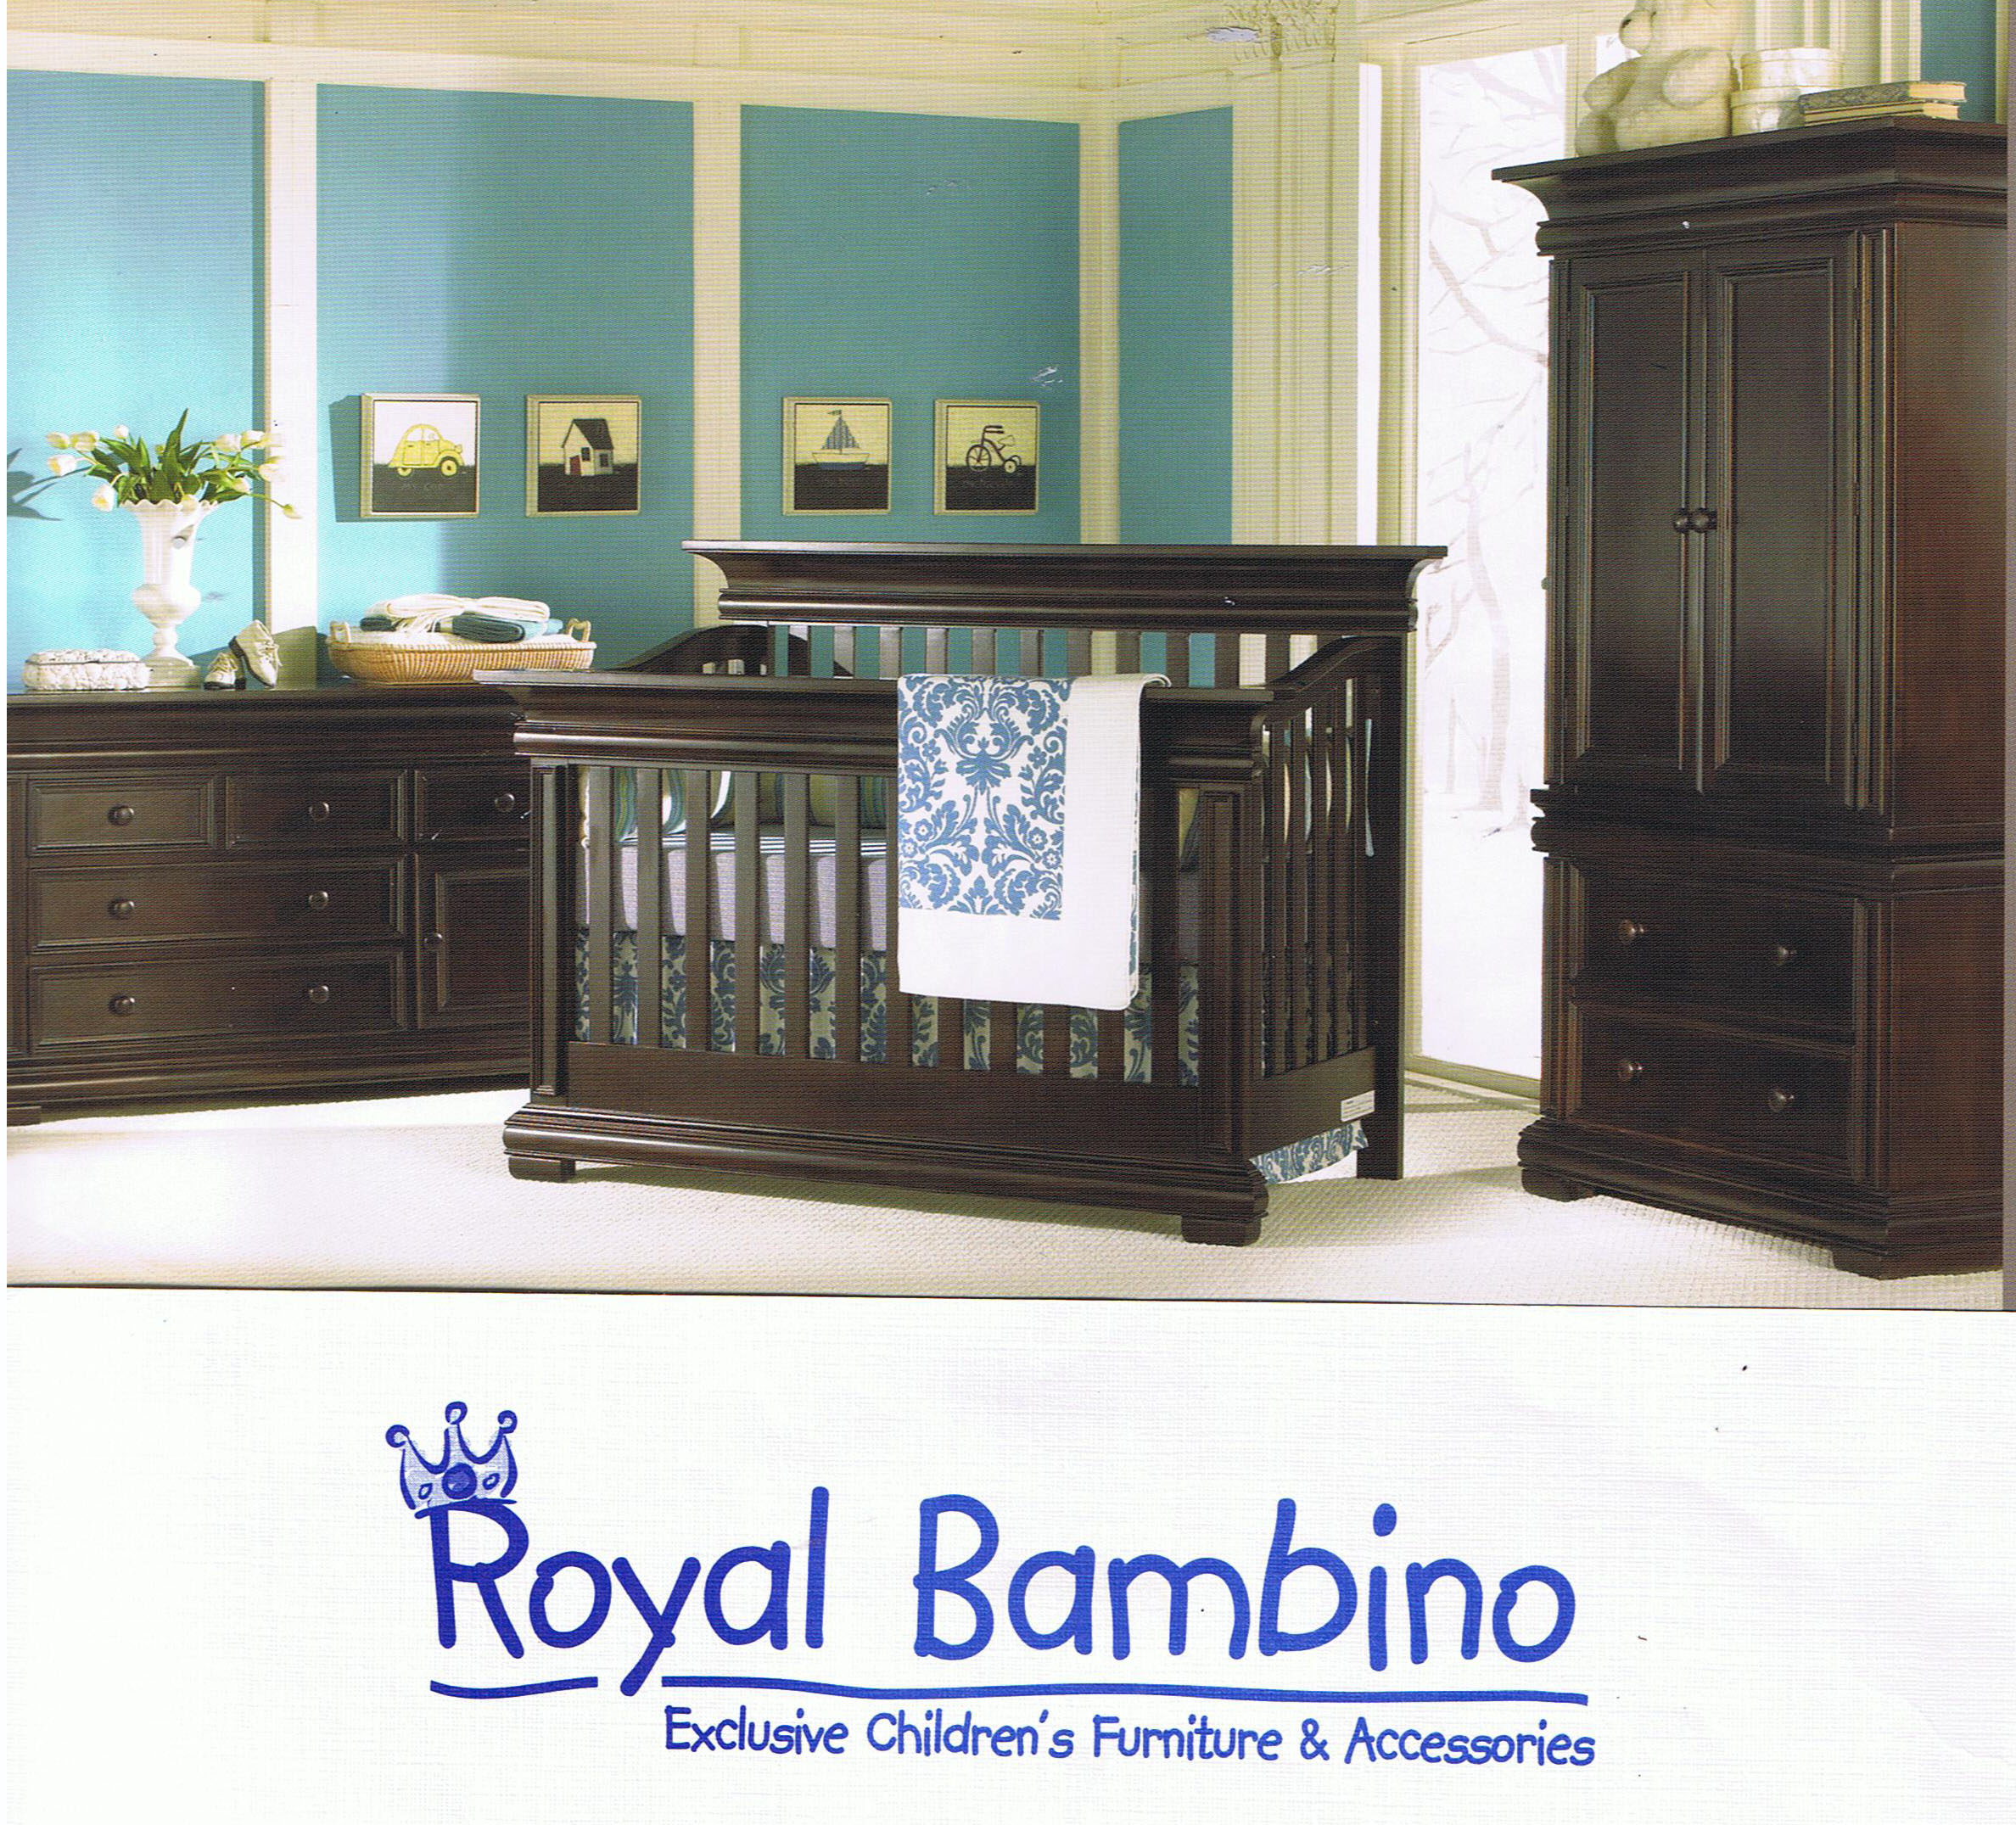 Munire furniture sale starts today royal bambino for Furniture sales today